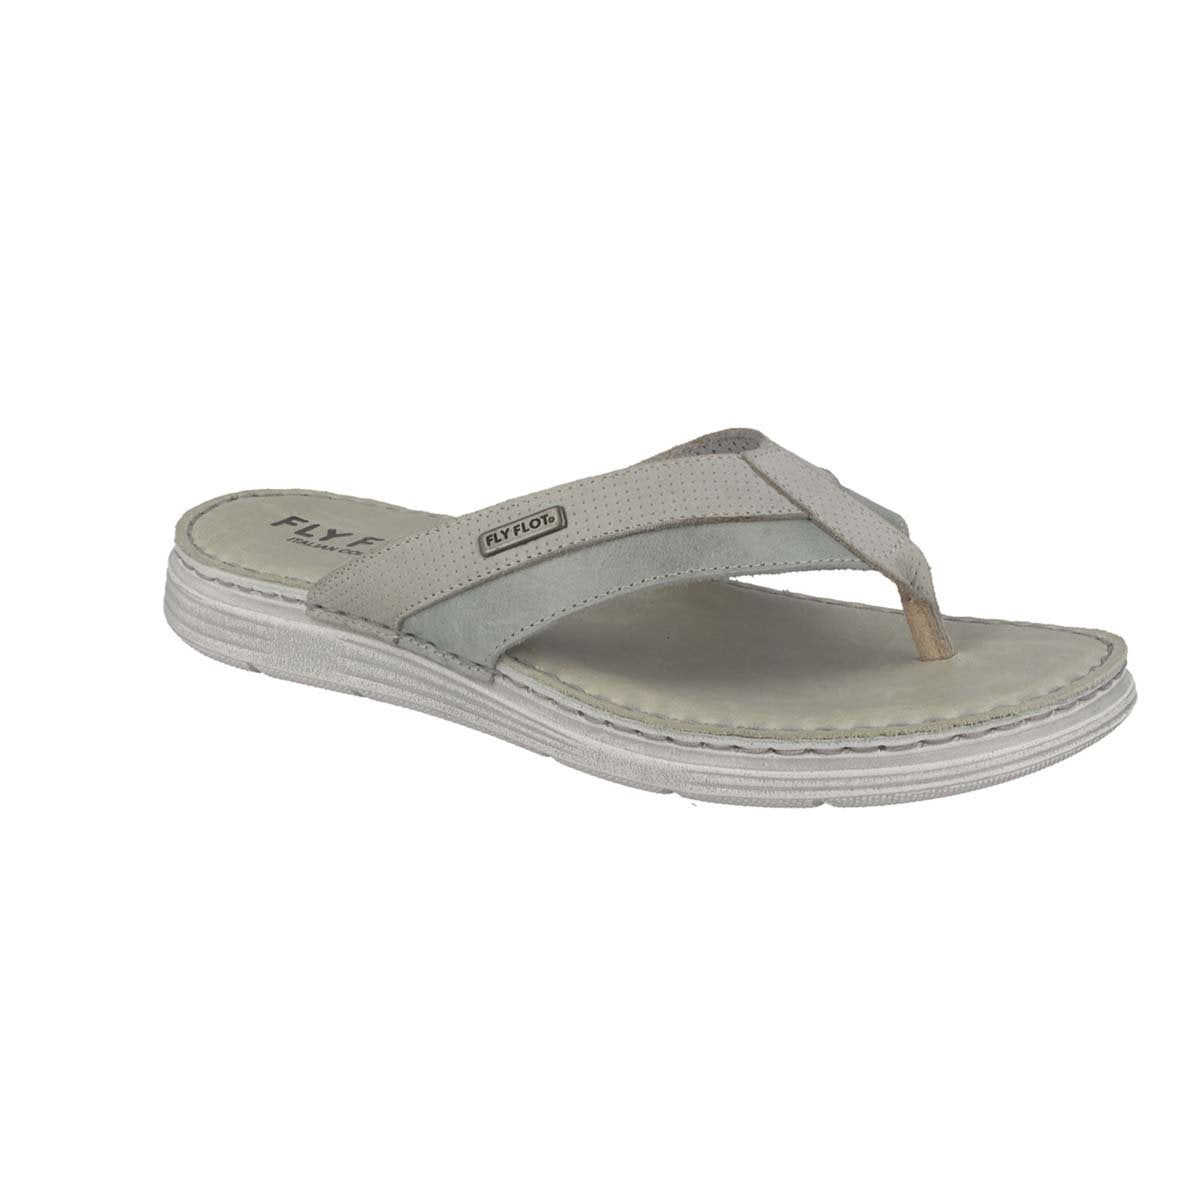 Photo of the Leather Man Slipper Grey (68128tg)